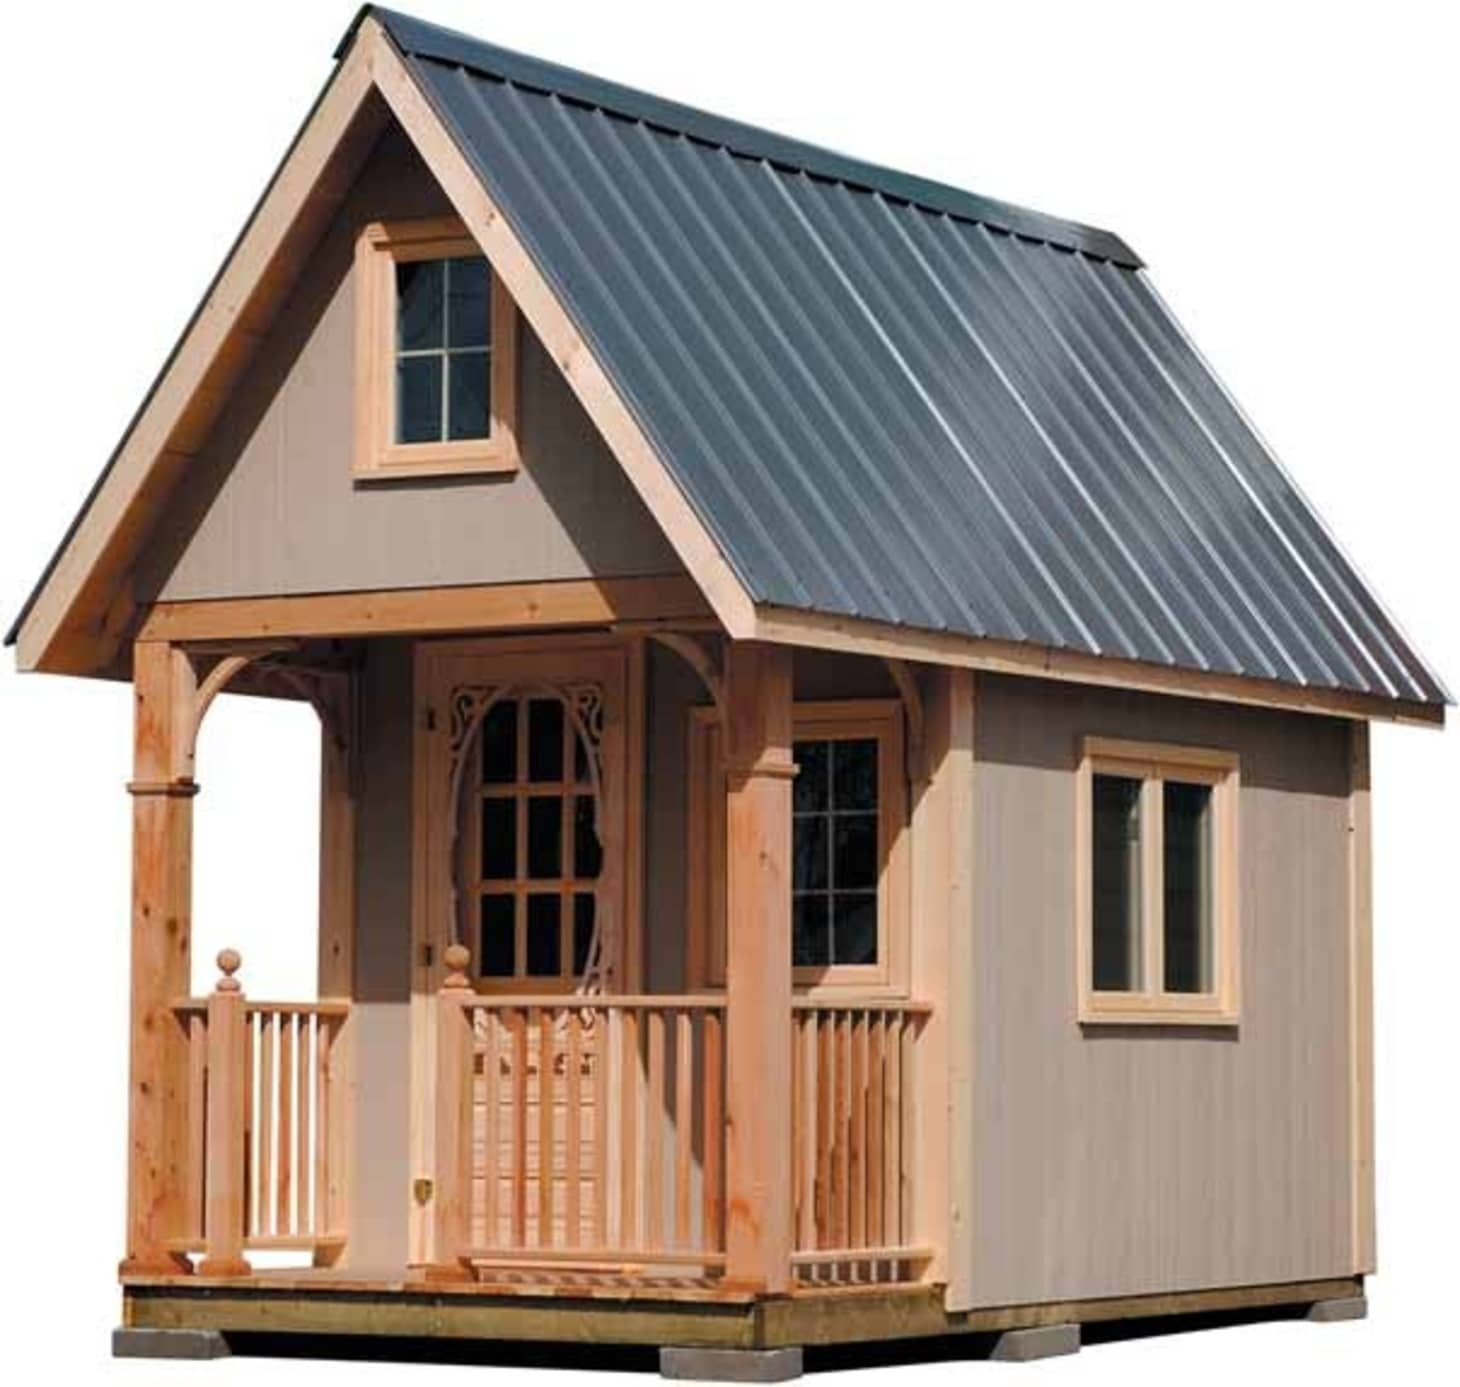 10 Free (or Very Cheap) Tiny House Plans | Apartment Therapy Playhouse X With Loft Plans on barn style sheds with loft, yard sheds with loft, 16x20 cabin plan with loft, 14x16 cabin with a loft, one room cabin with loft, 12x12 cabin with sleeping loft,